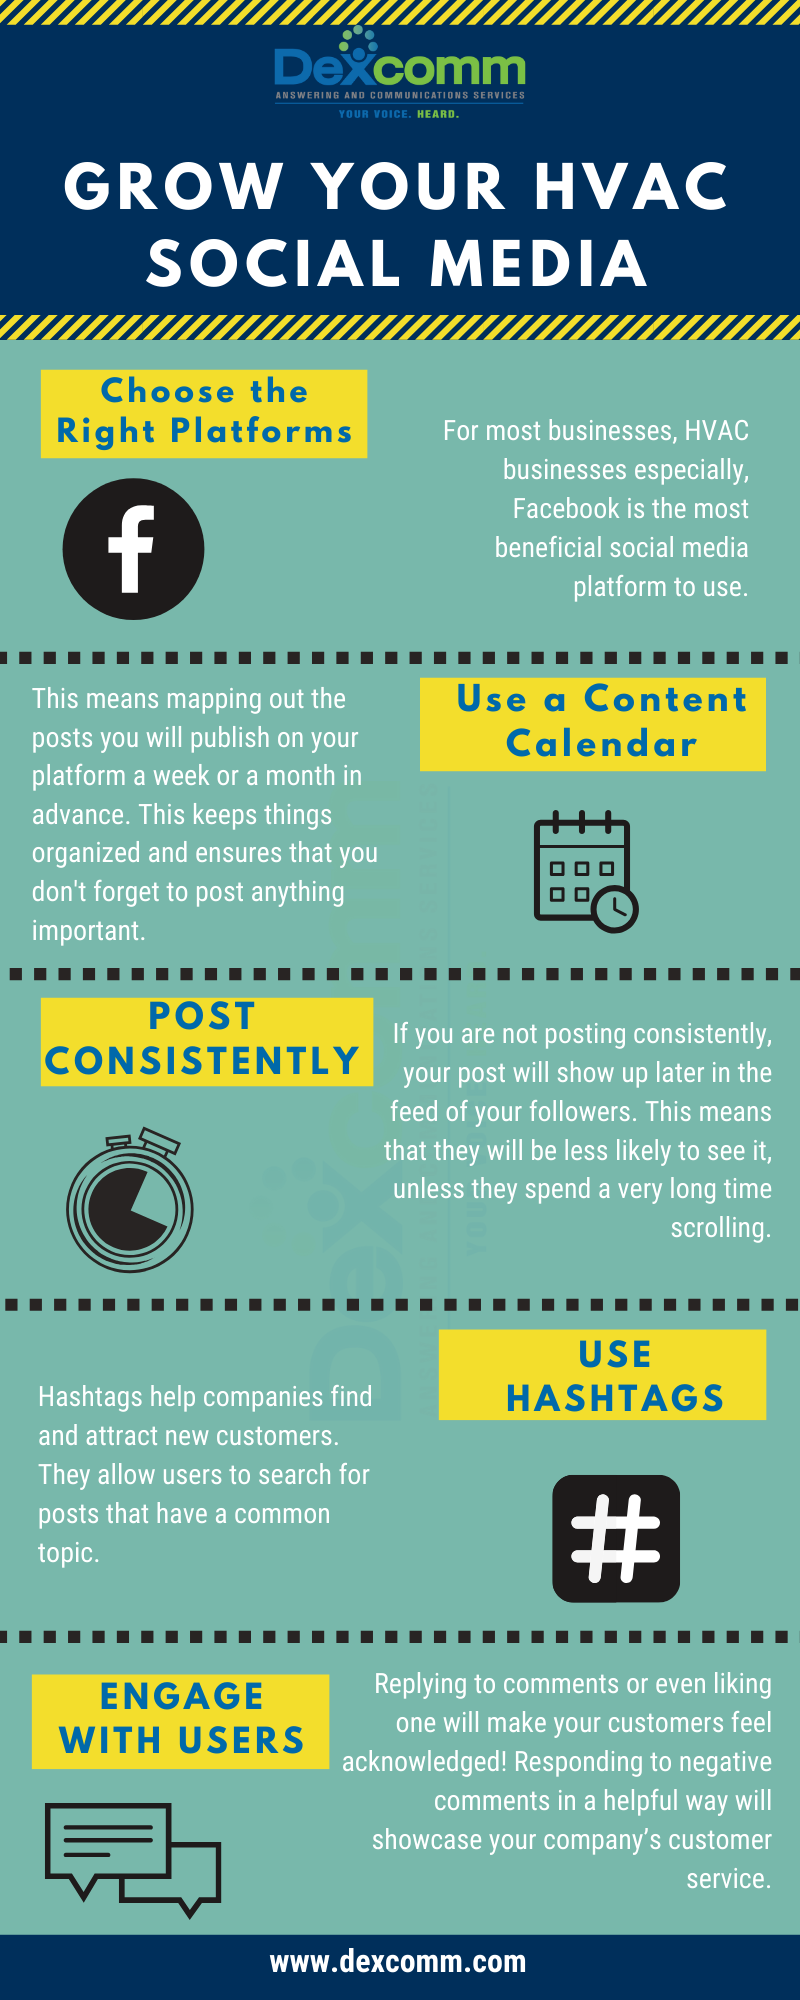 Grow your hvac social media